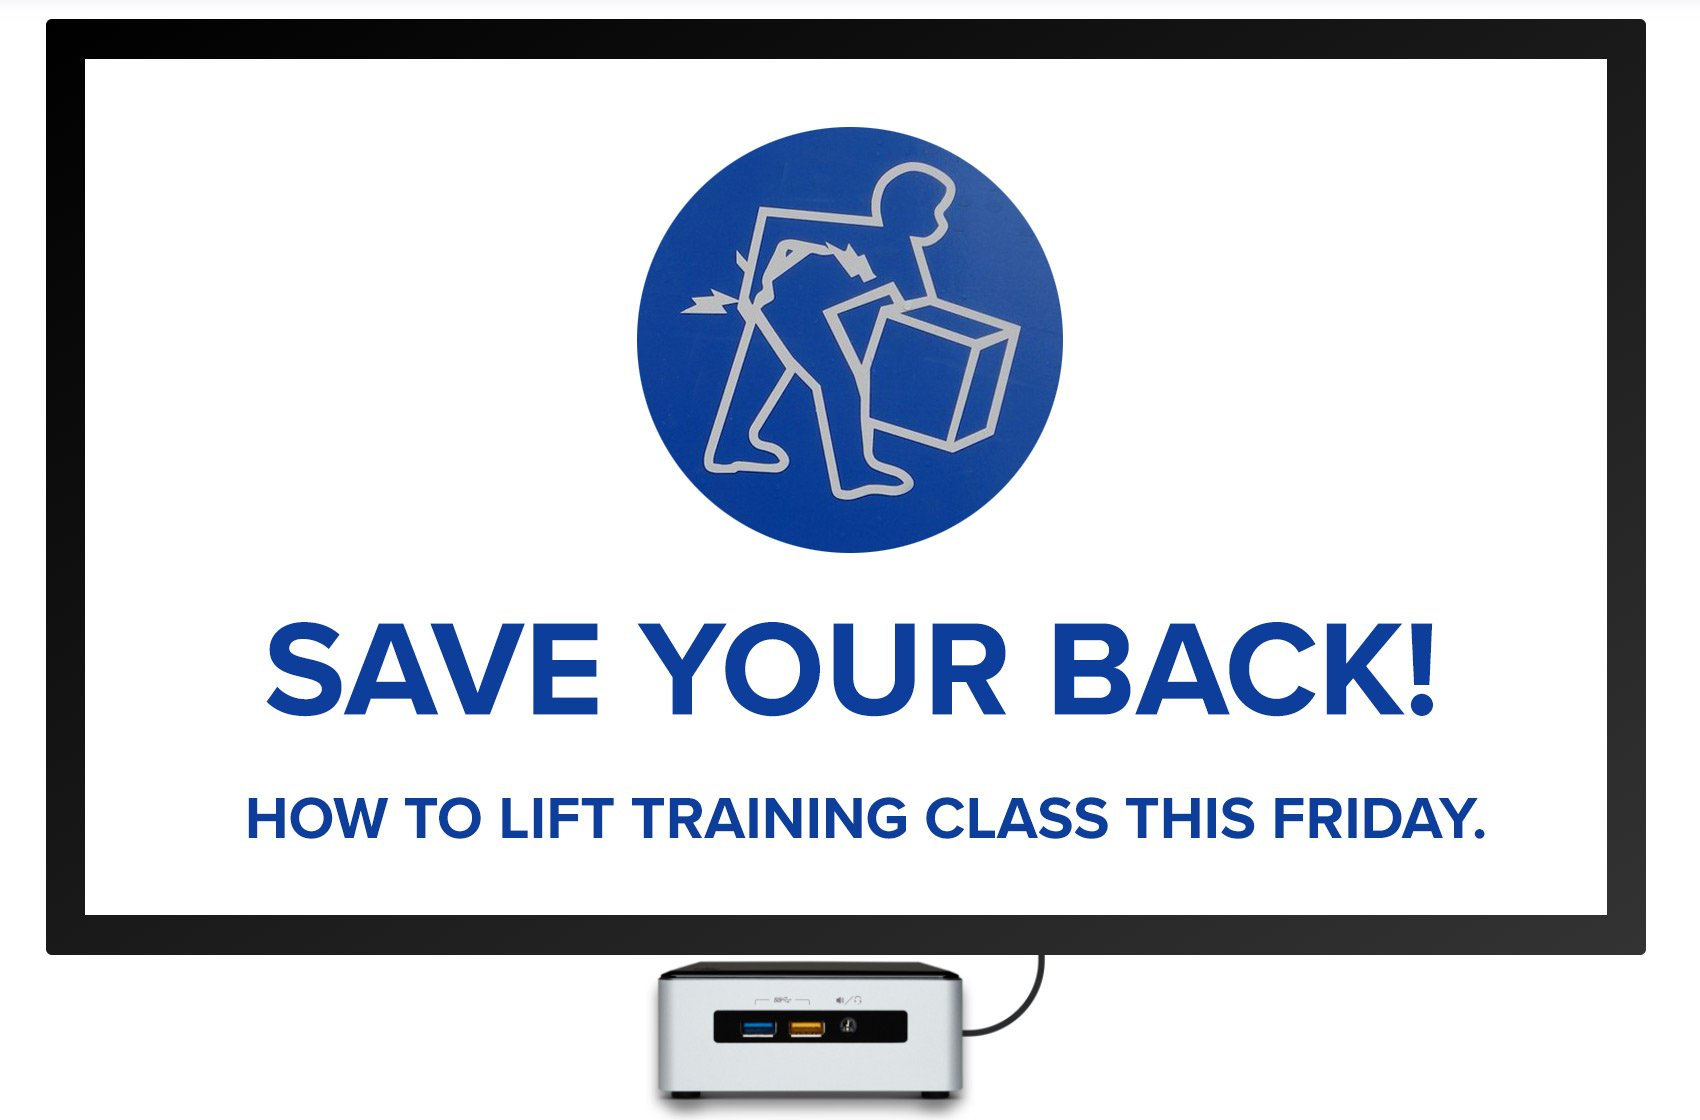 SAVE YOUR BACK digital signage